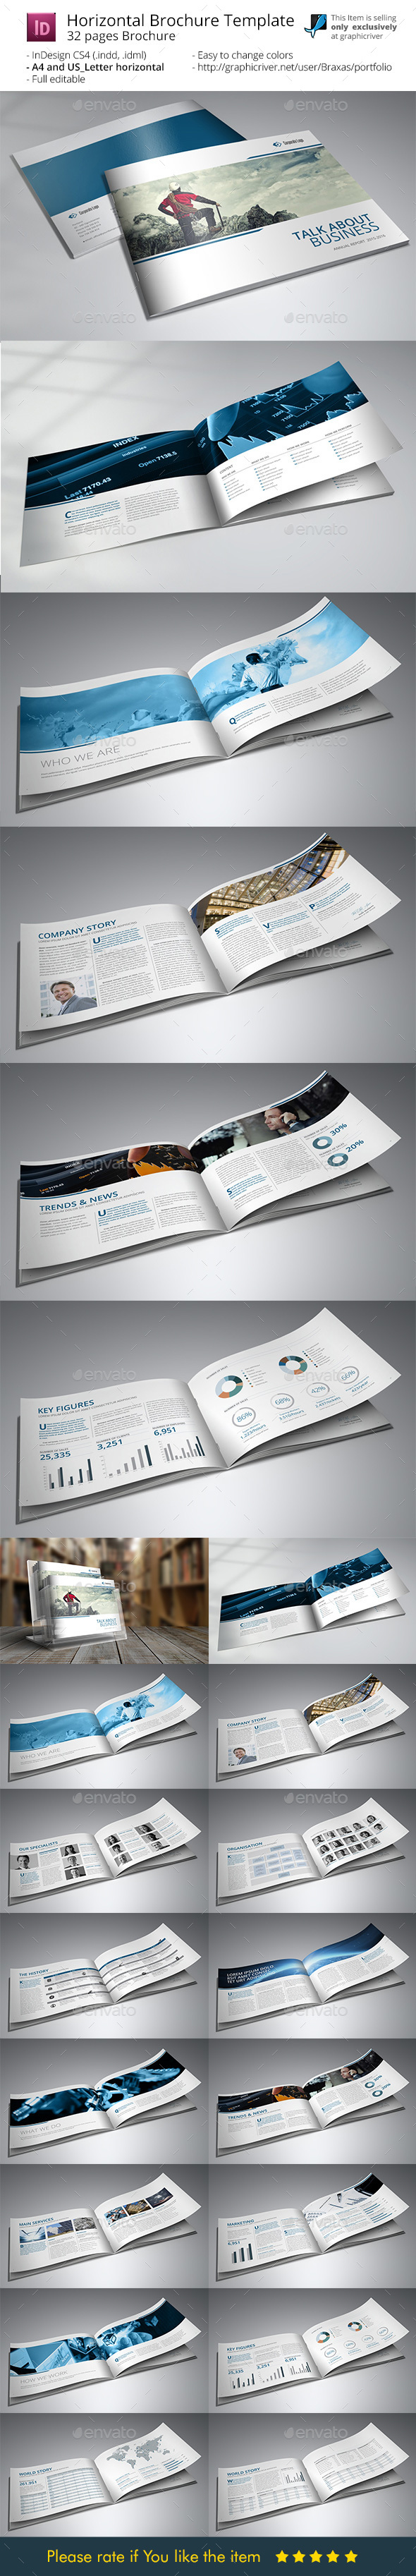 Business Brochure Printing Template - Informational Brochures